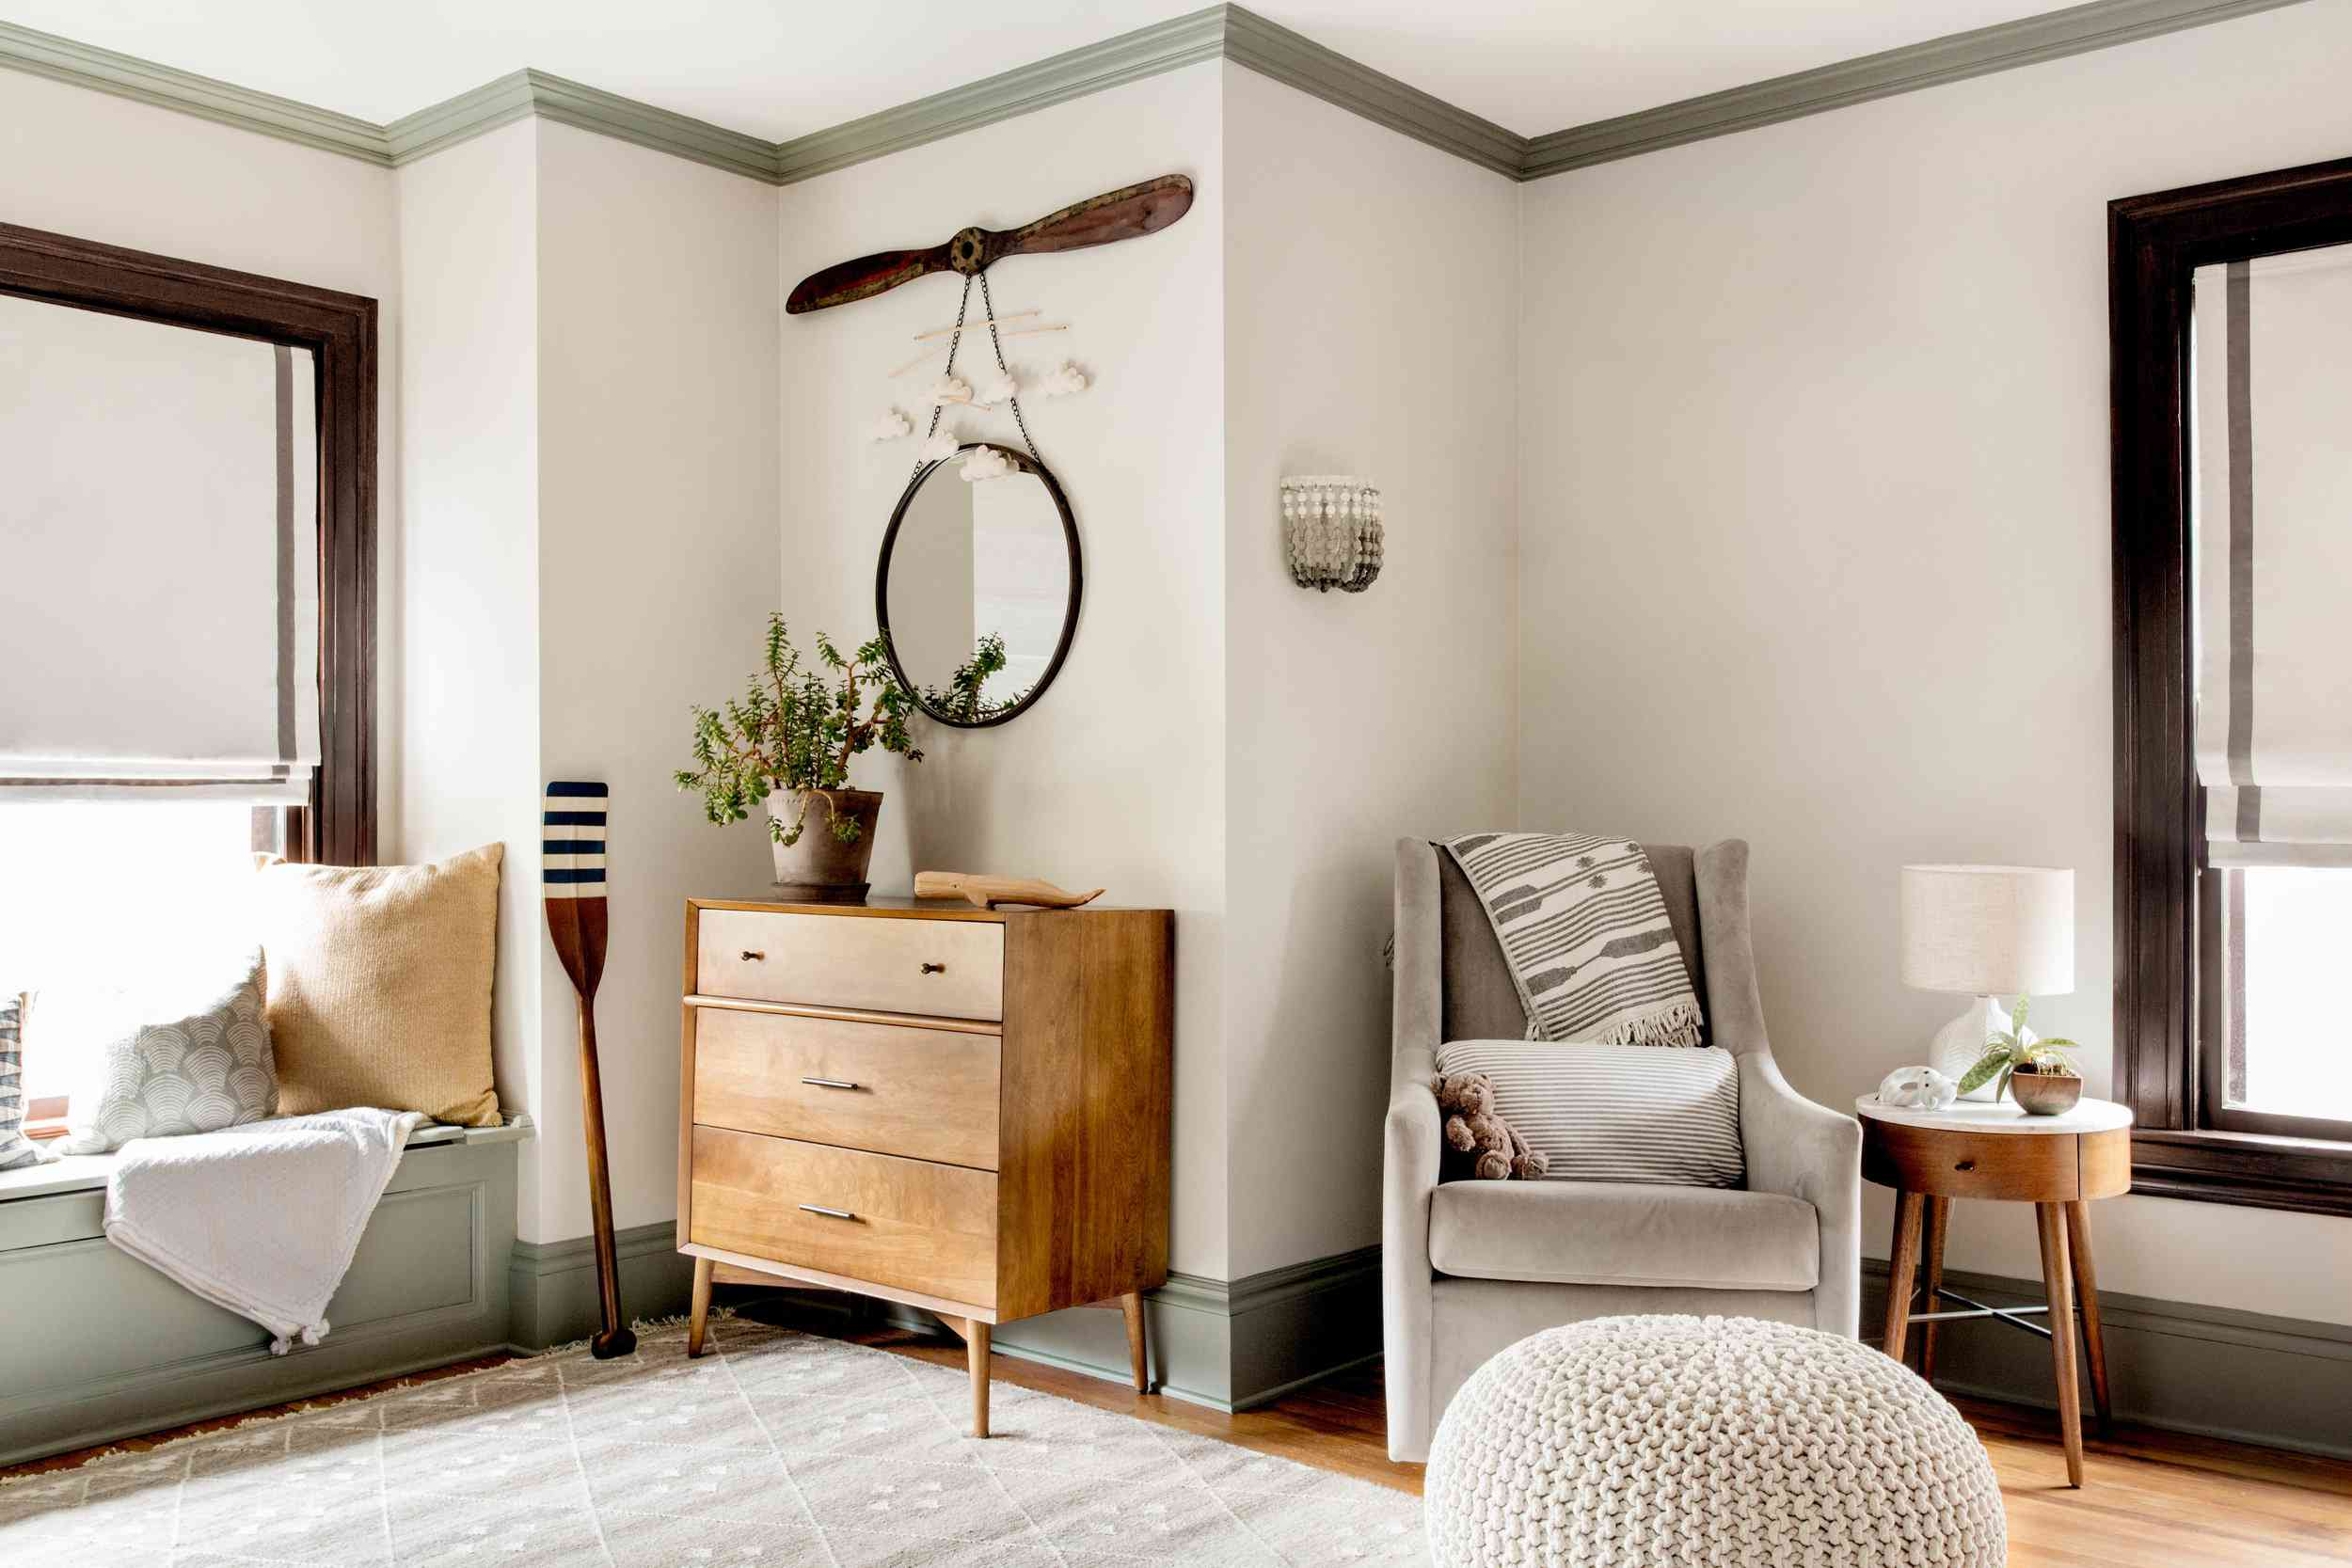 how to decorate with sage - painted sage trim